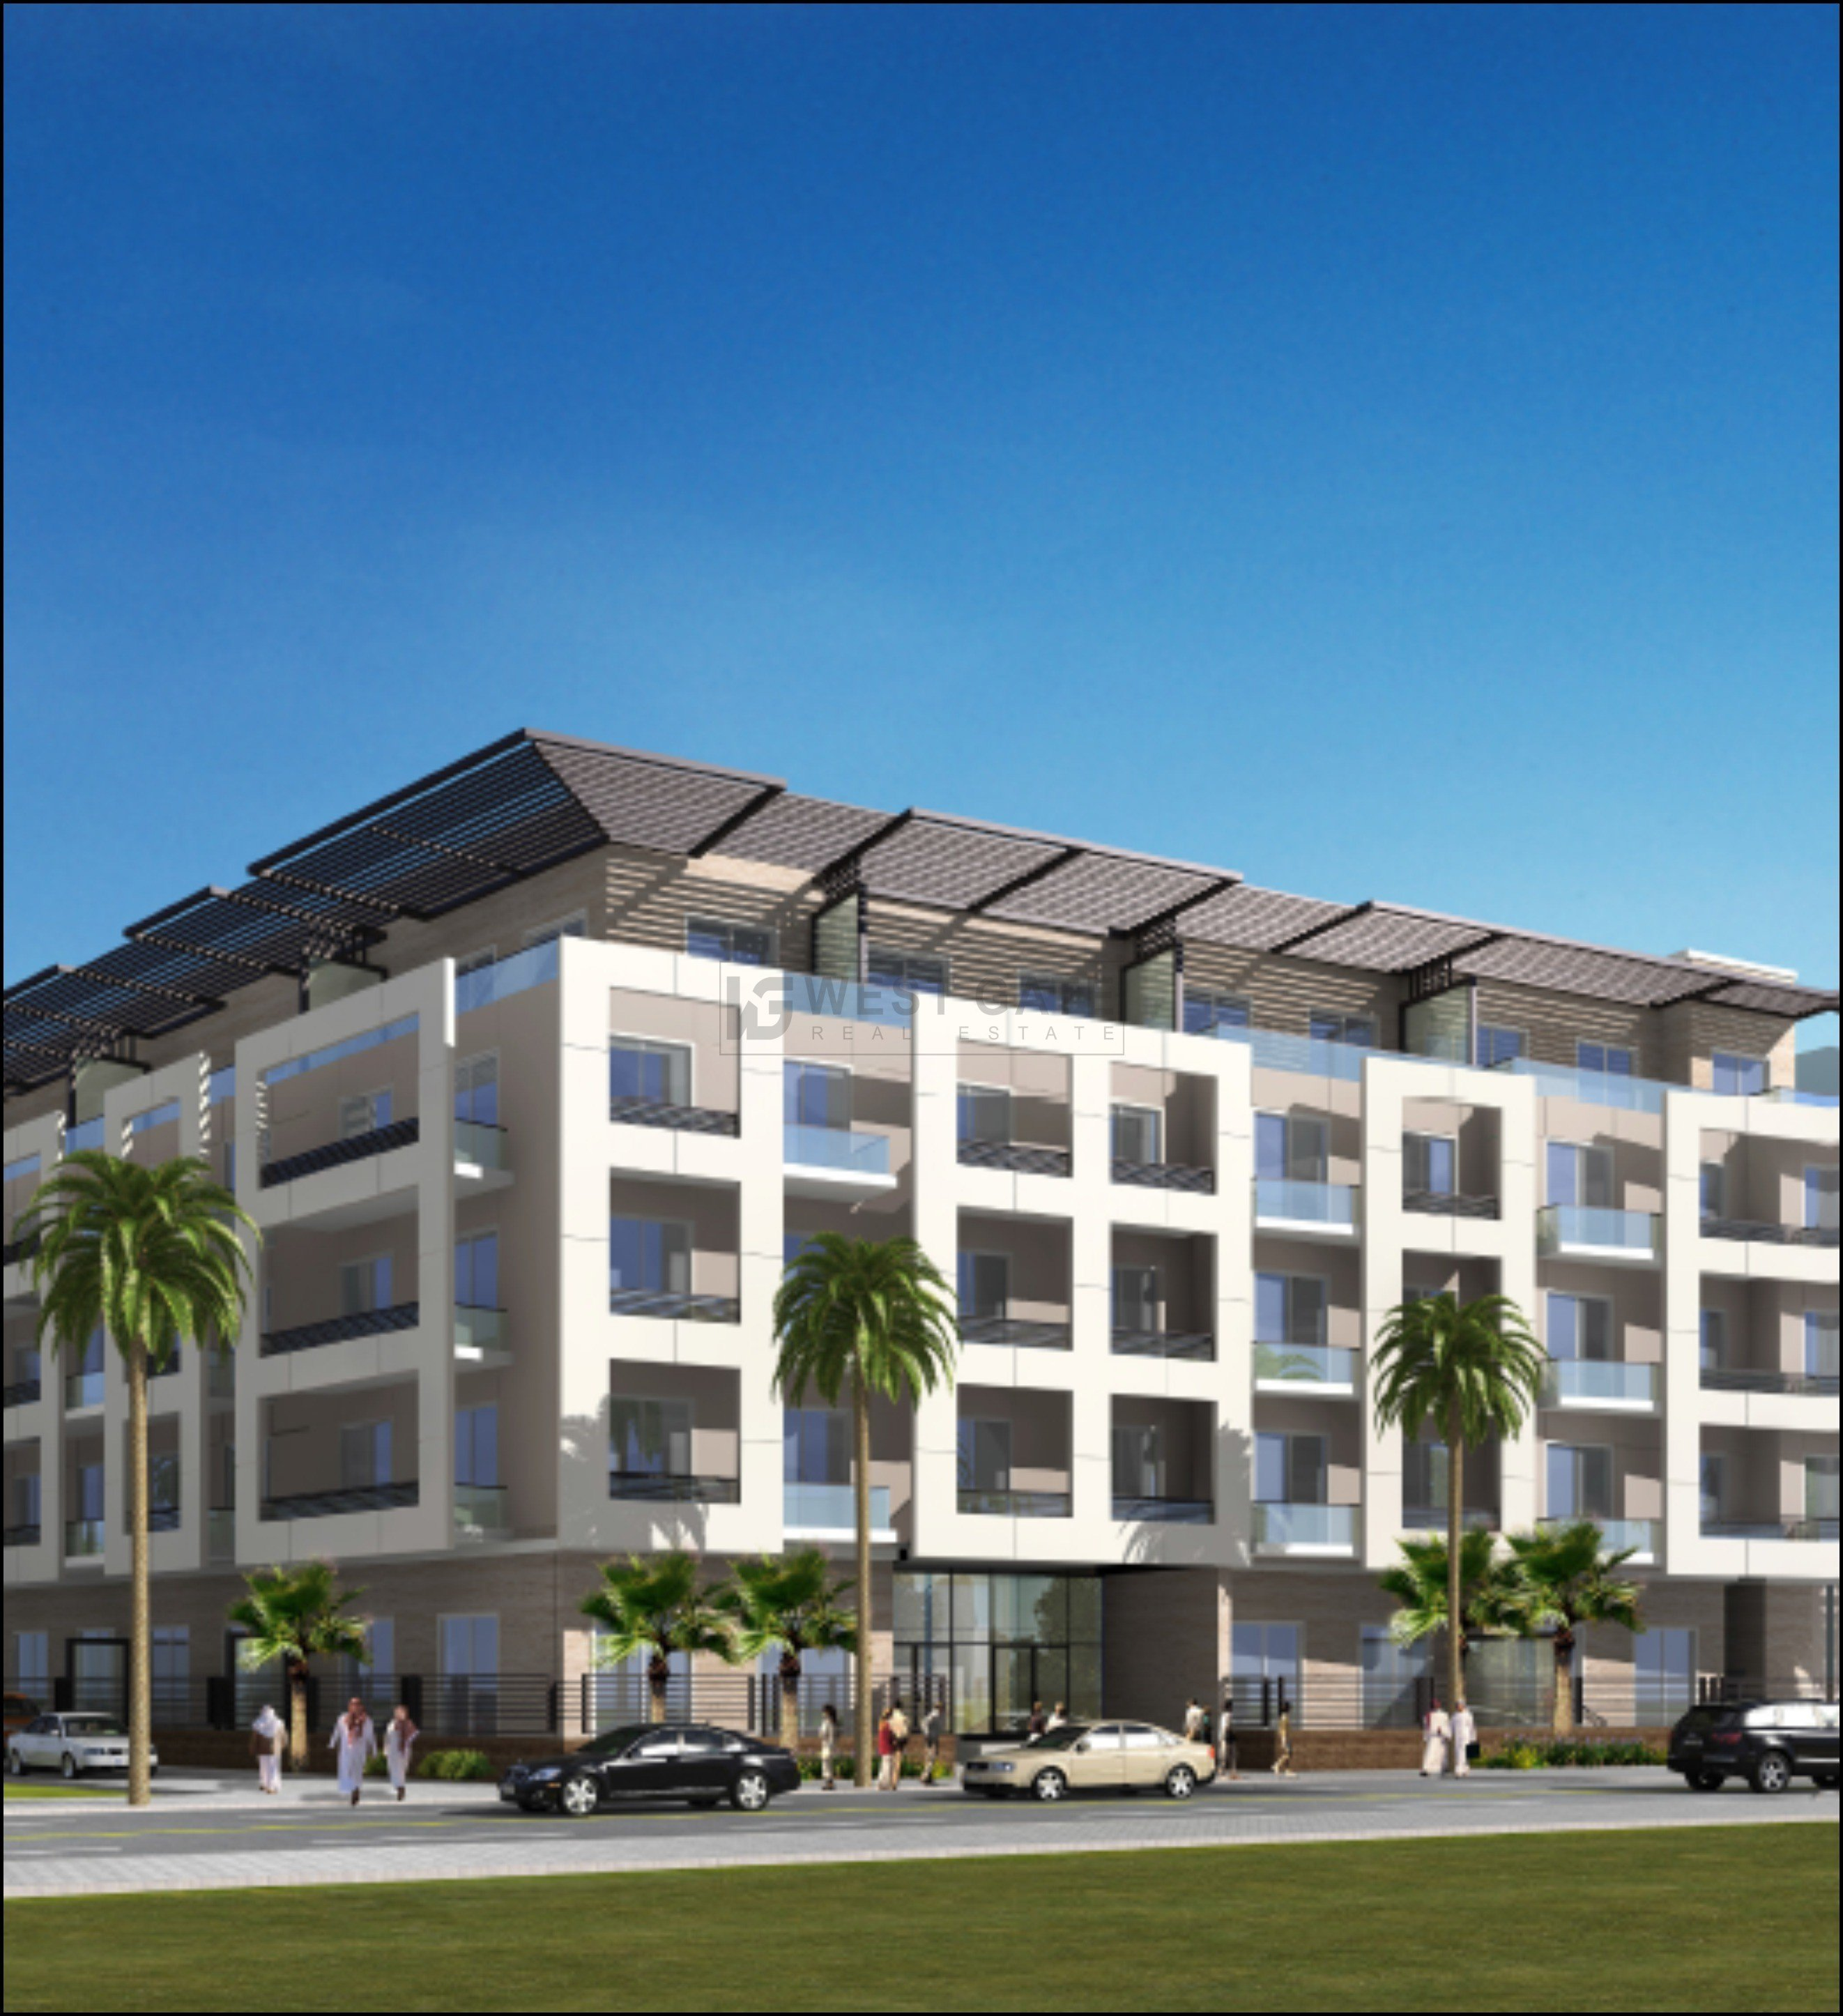 Rental Homes Search Engines: (WESTGATE-613272) Residential Building To Rent In Jumeirah